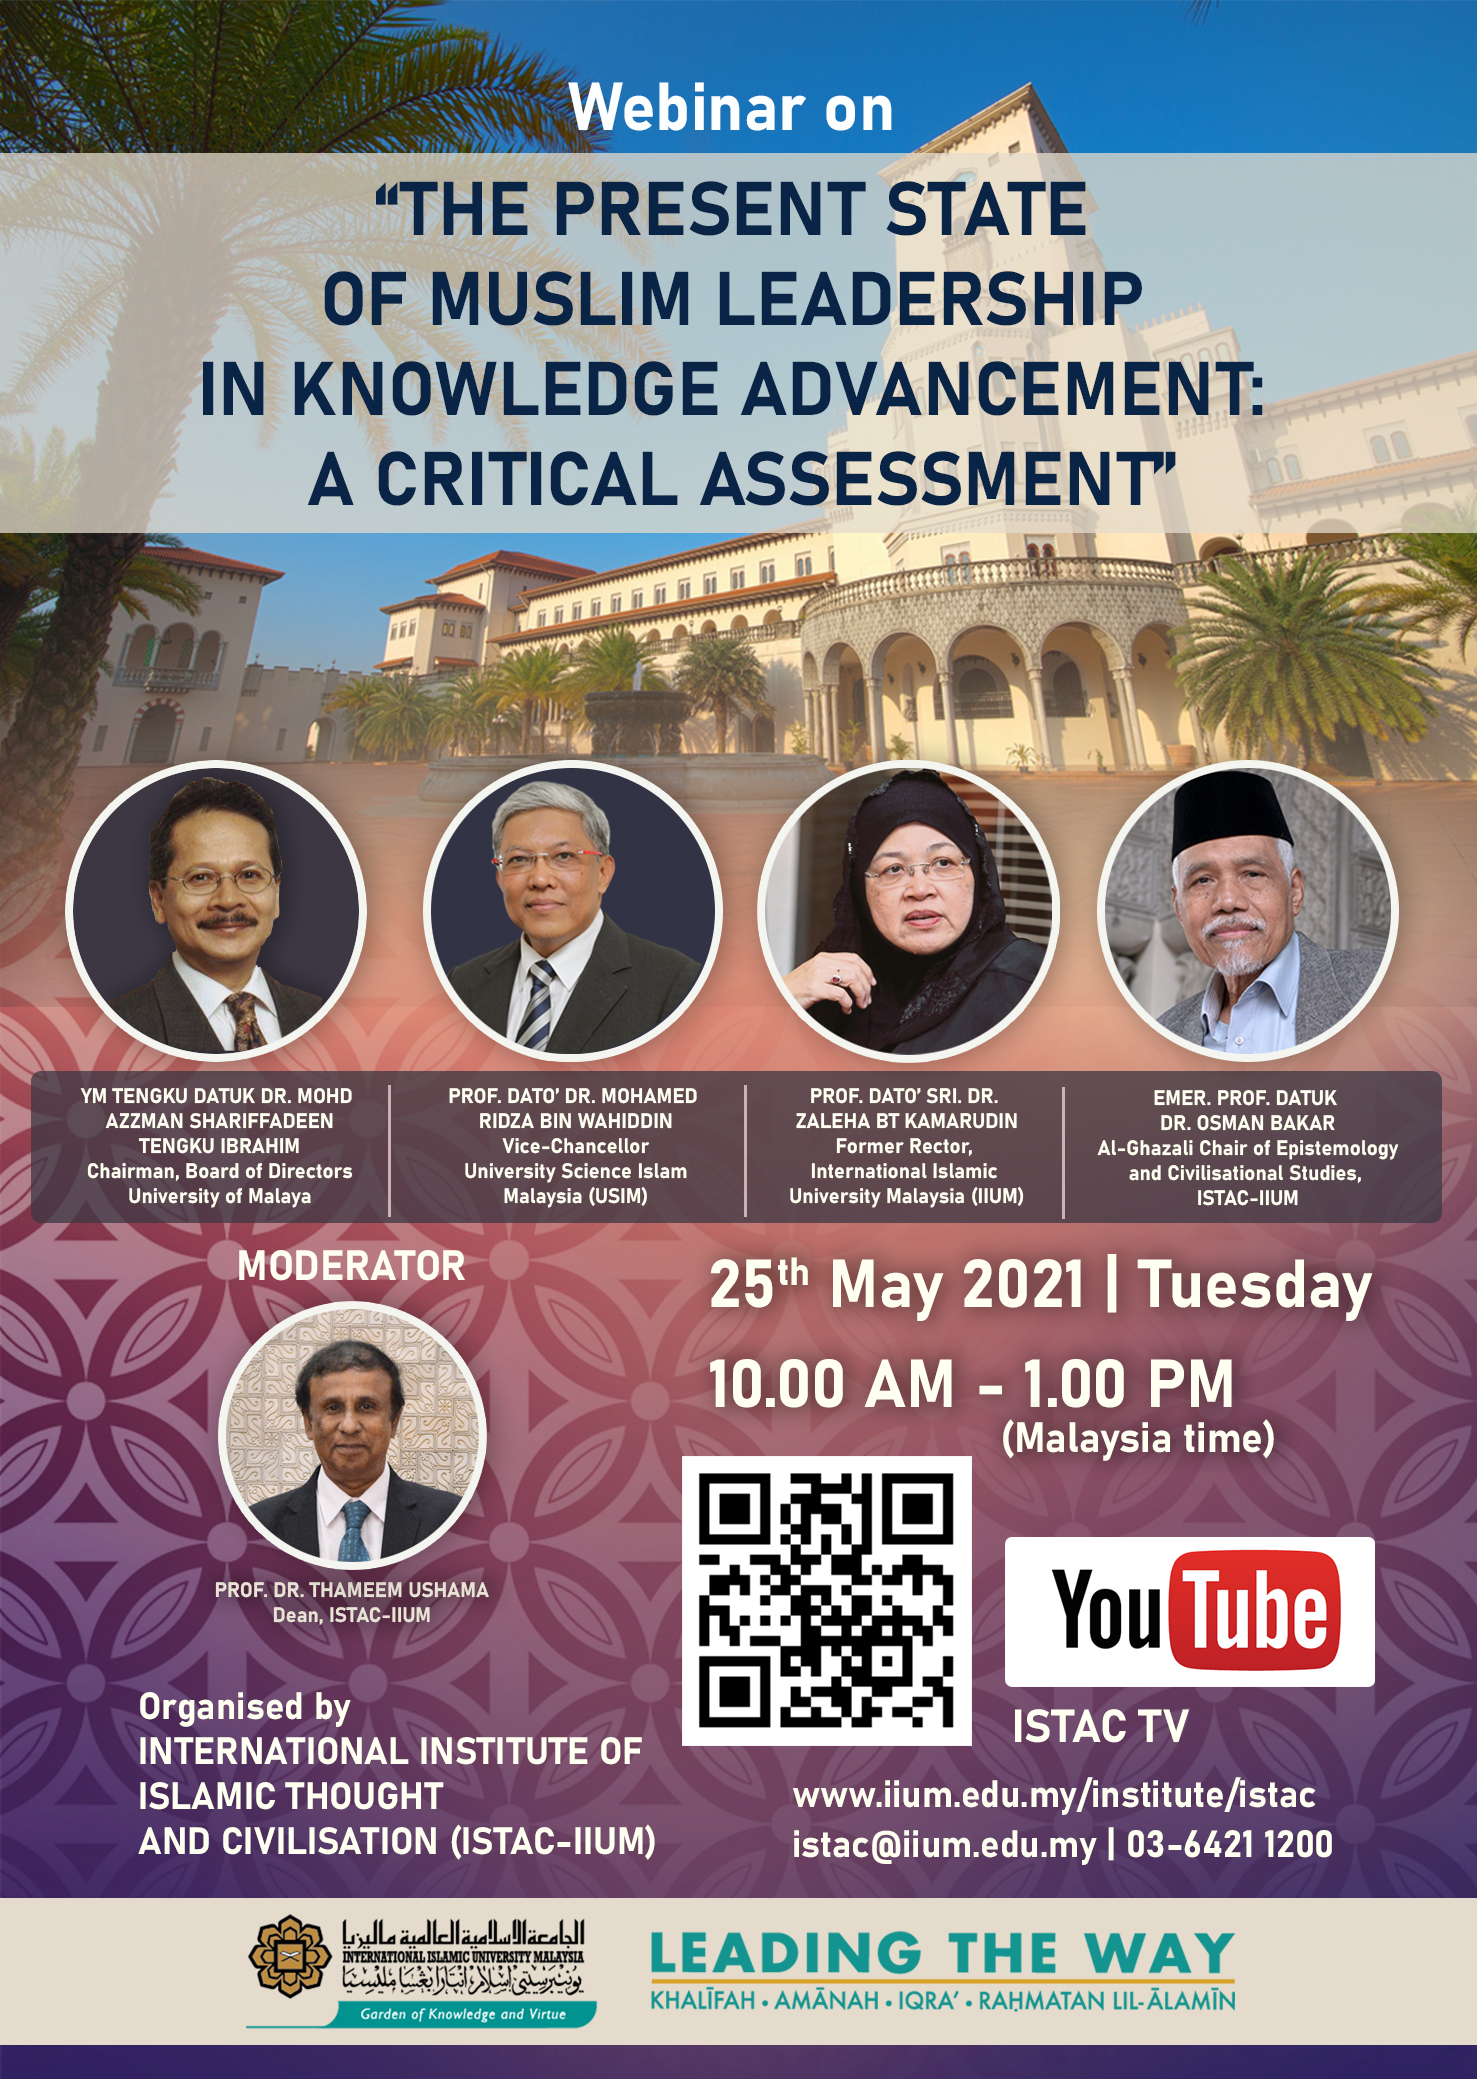 """webinar on """"THE PRESENT STATE OF MUSLIM LEADERSHIP IN KNOWLEDGE ADVANCEMENT: A CRITICAL ASSESSMENT"""""""